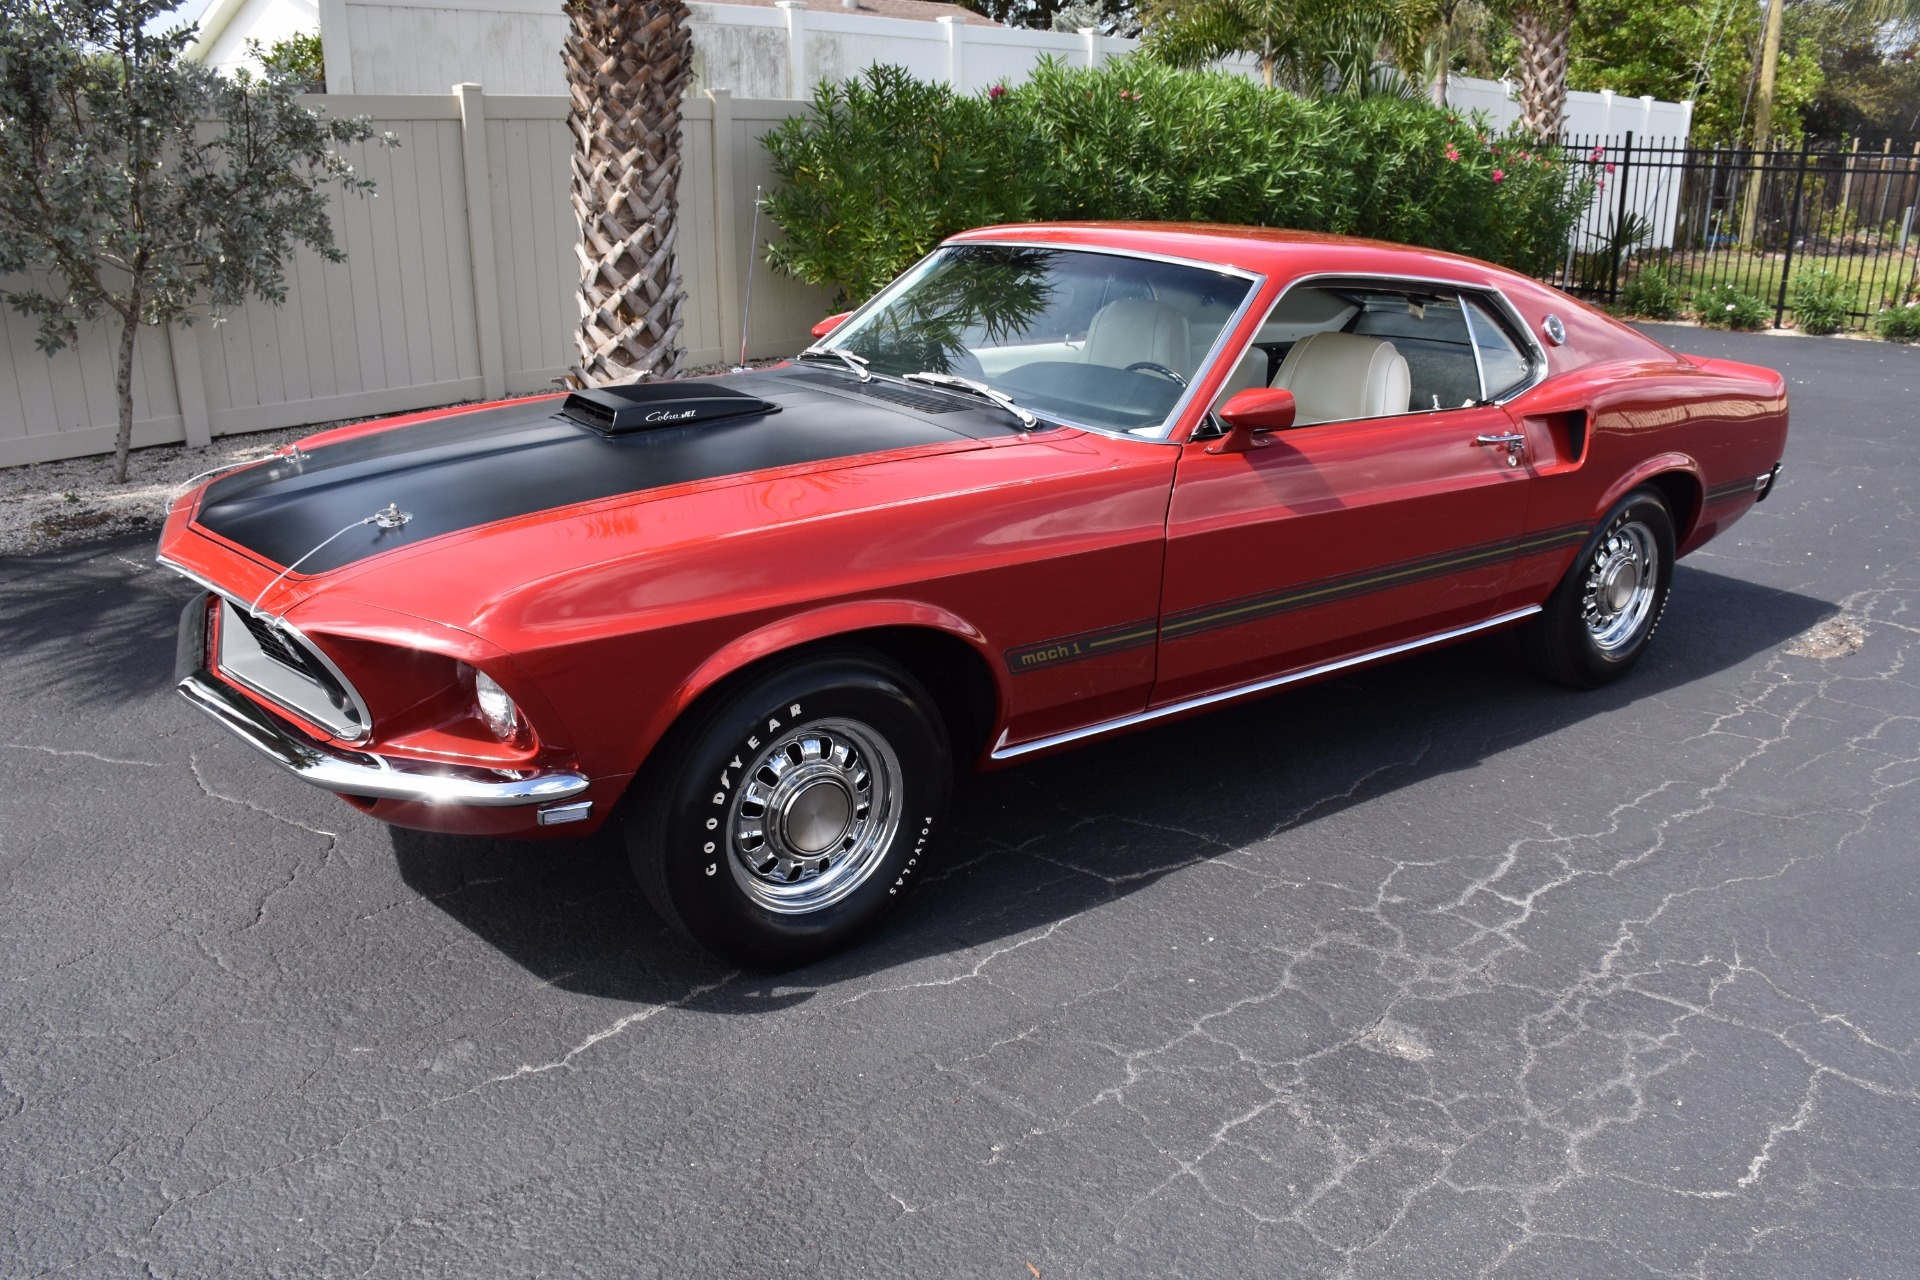 1969 Ford Mustang Mach 1 428 Cobra Jet 0 Candy Apple Red Coupe 1971 For Sale 428ci J